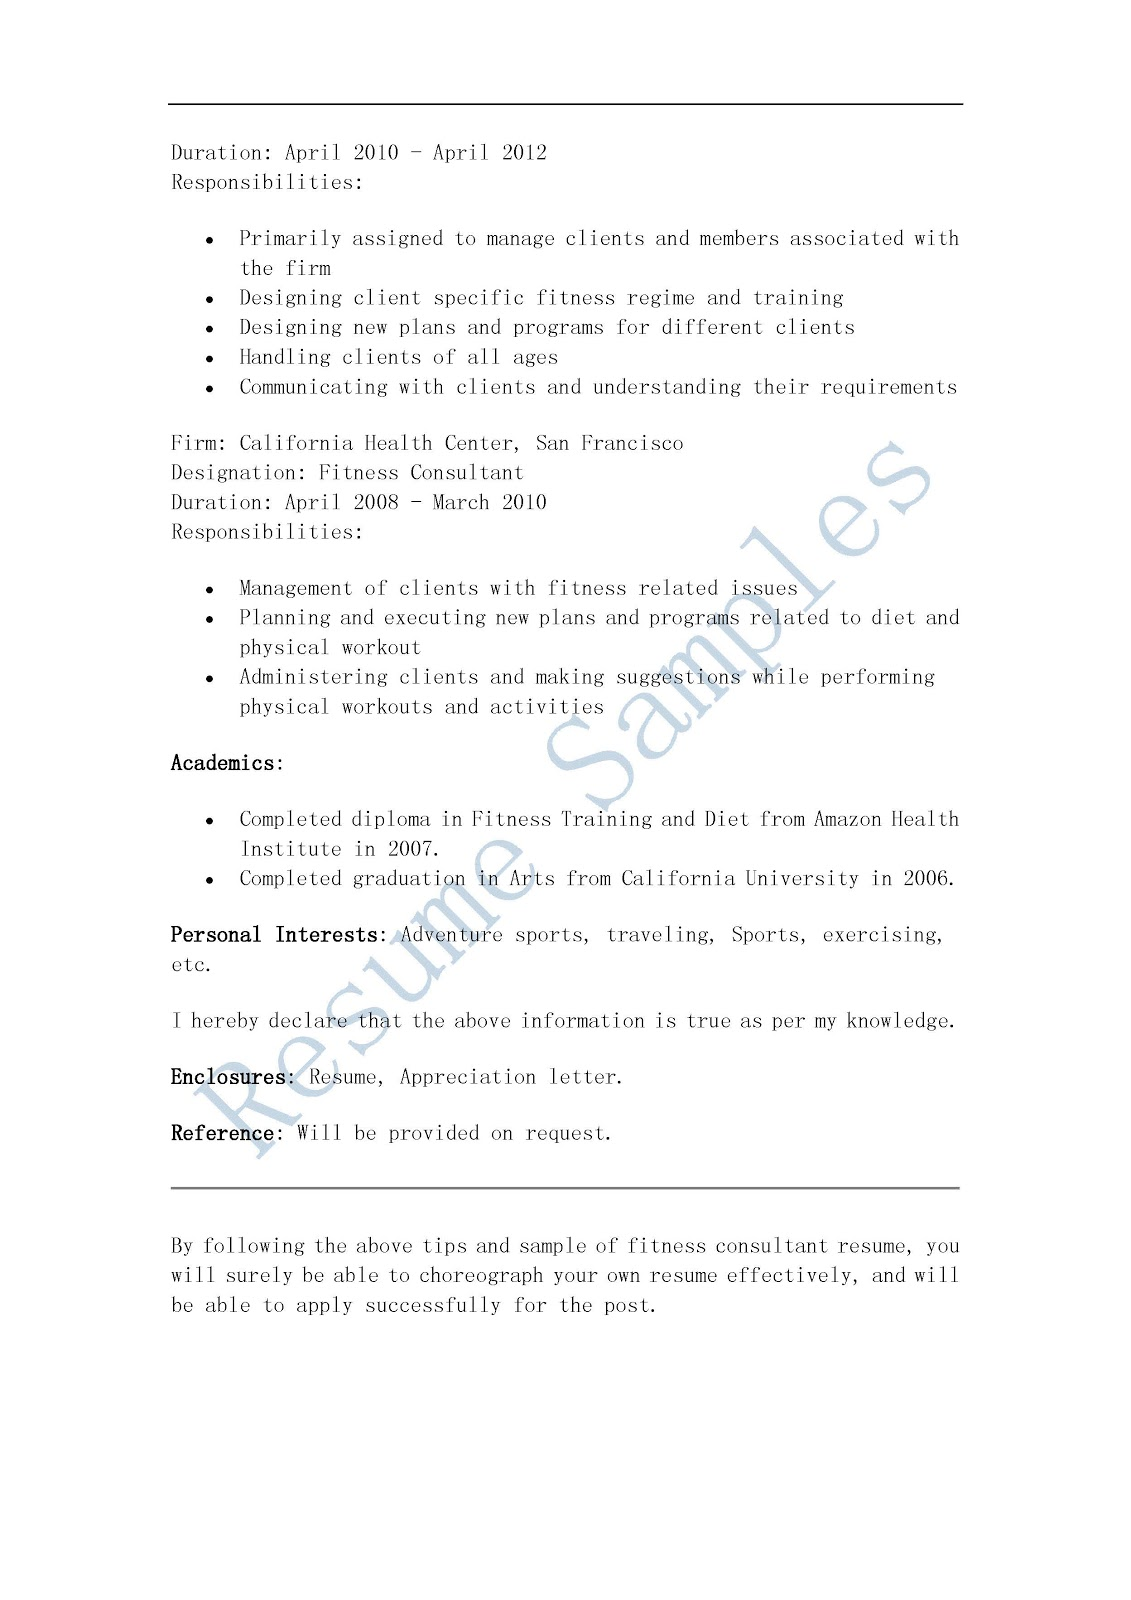 Fitness consultant resume ideas